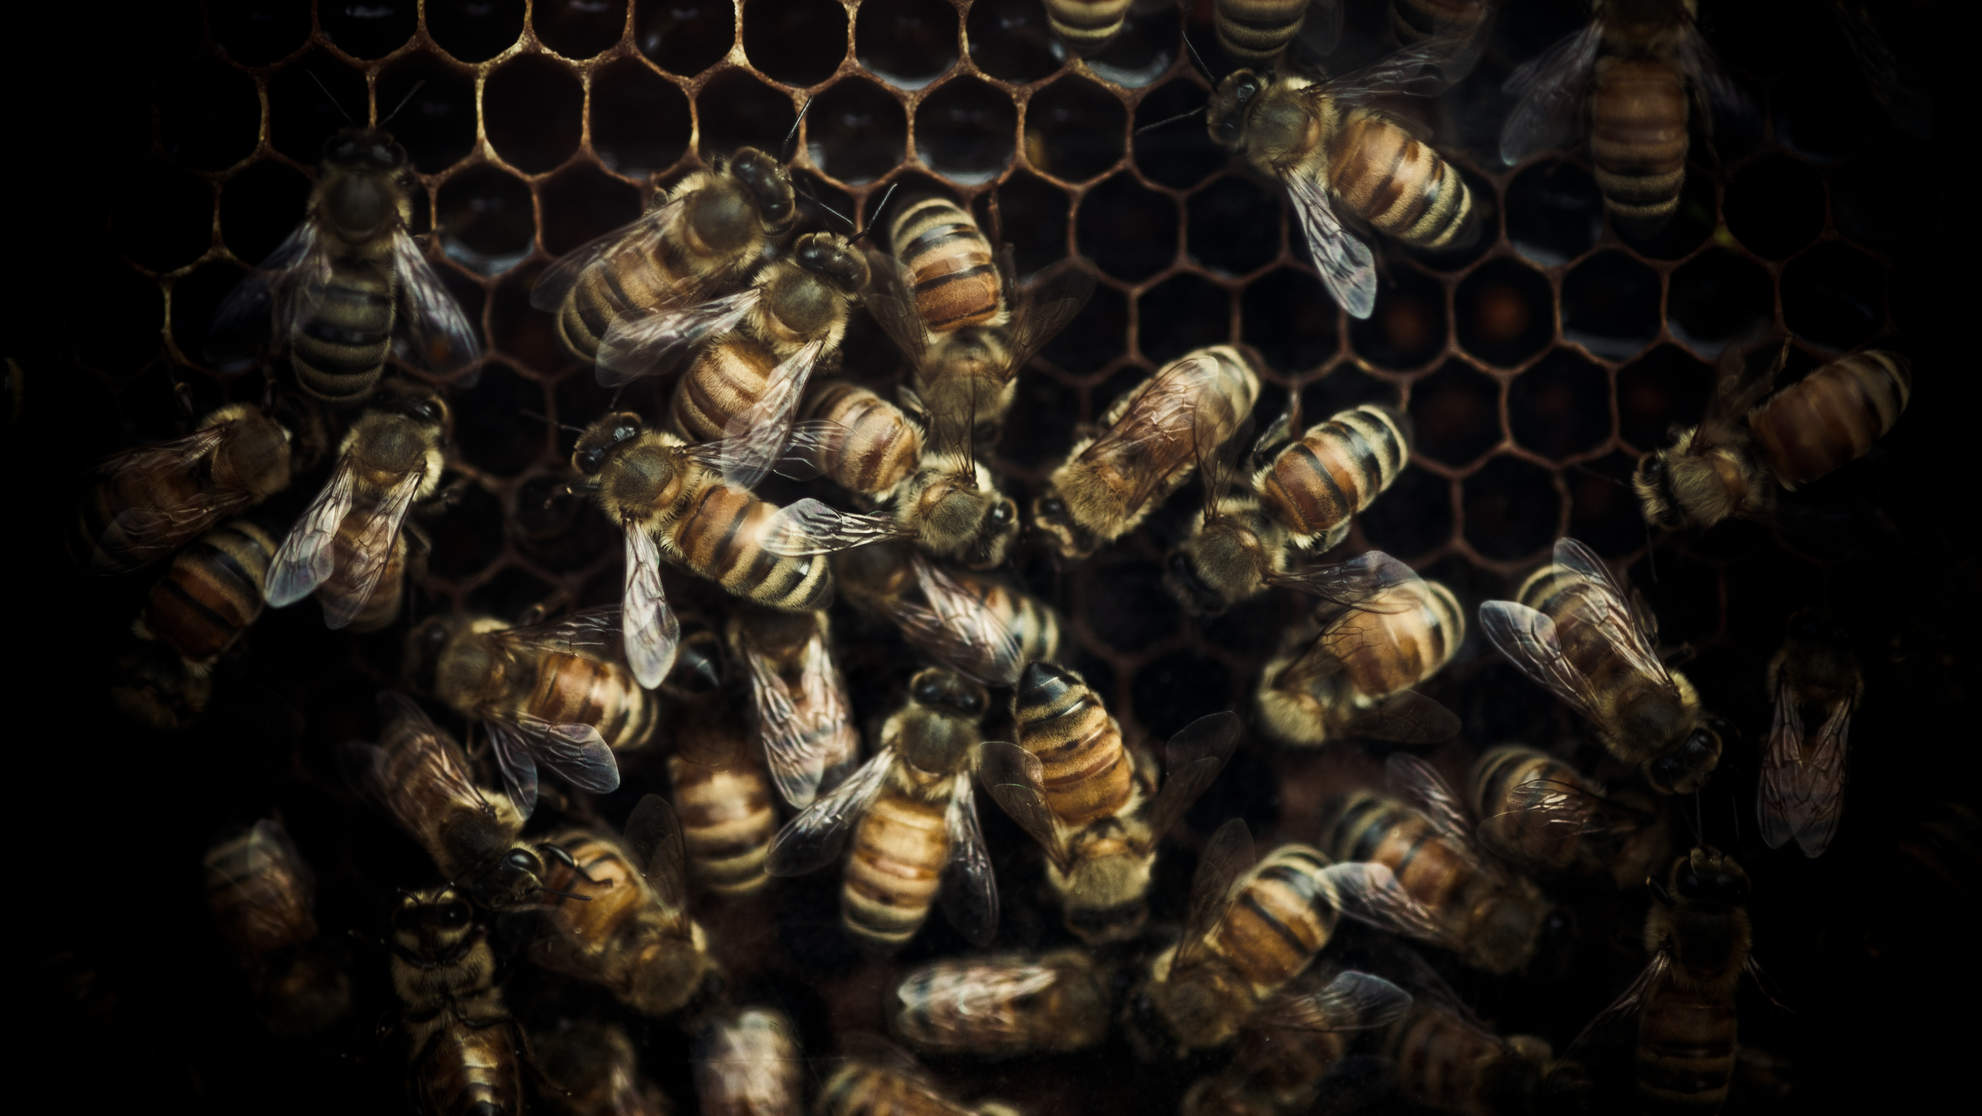 Woman In Critical Condition After Being Stung Over 200 Times by Africanized Bees